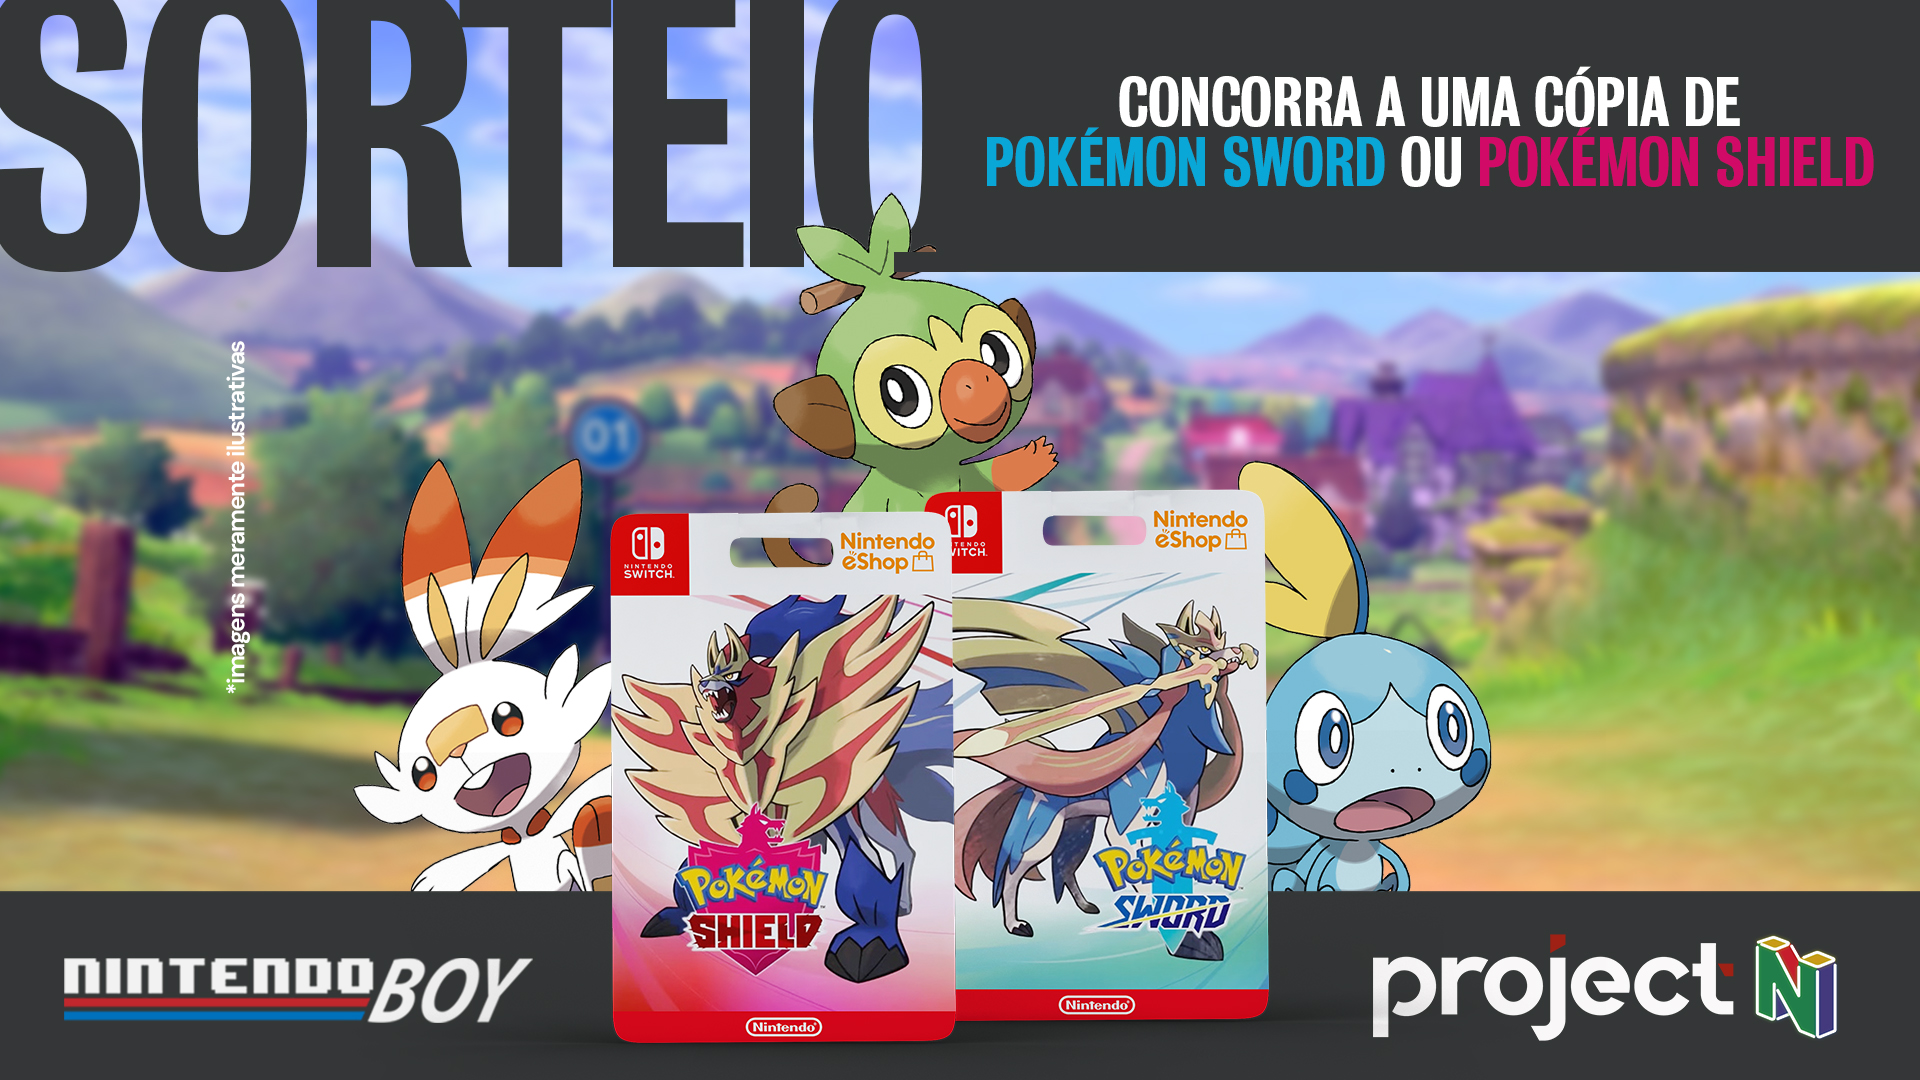 Sorteio Pokémon Sword ou Shield